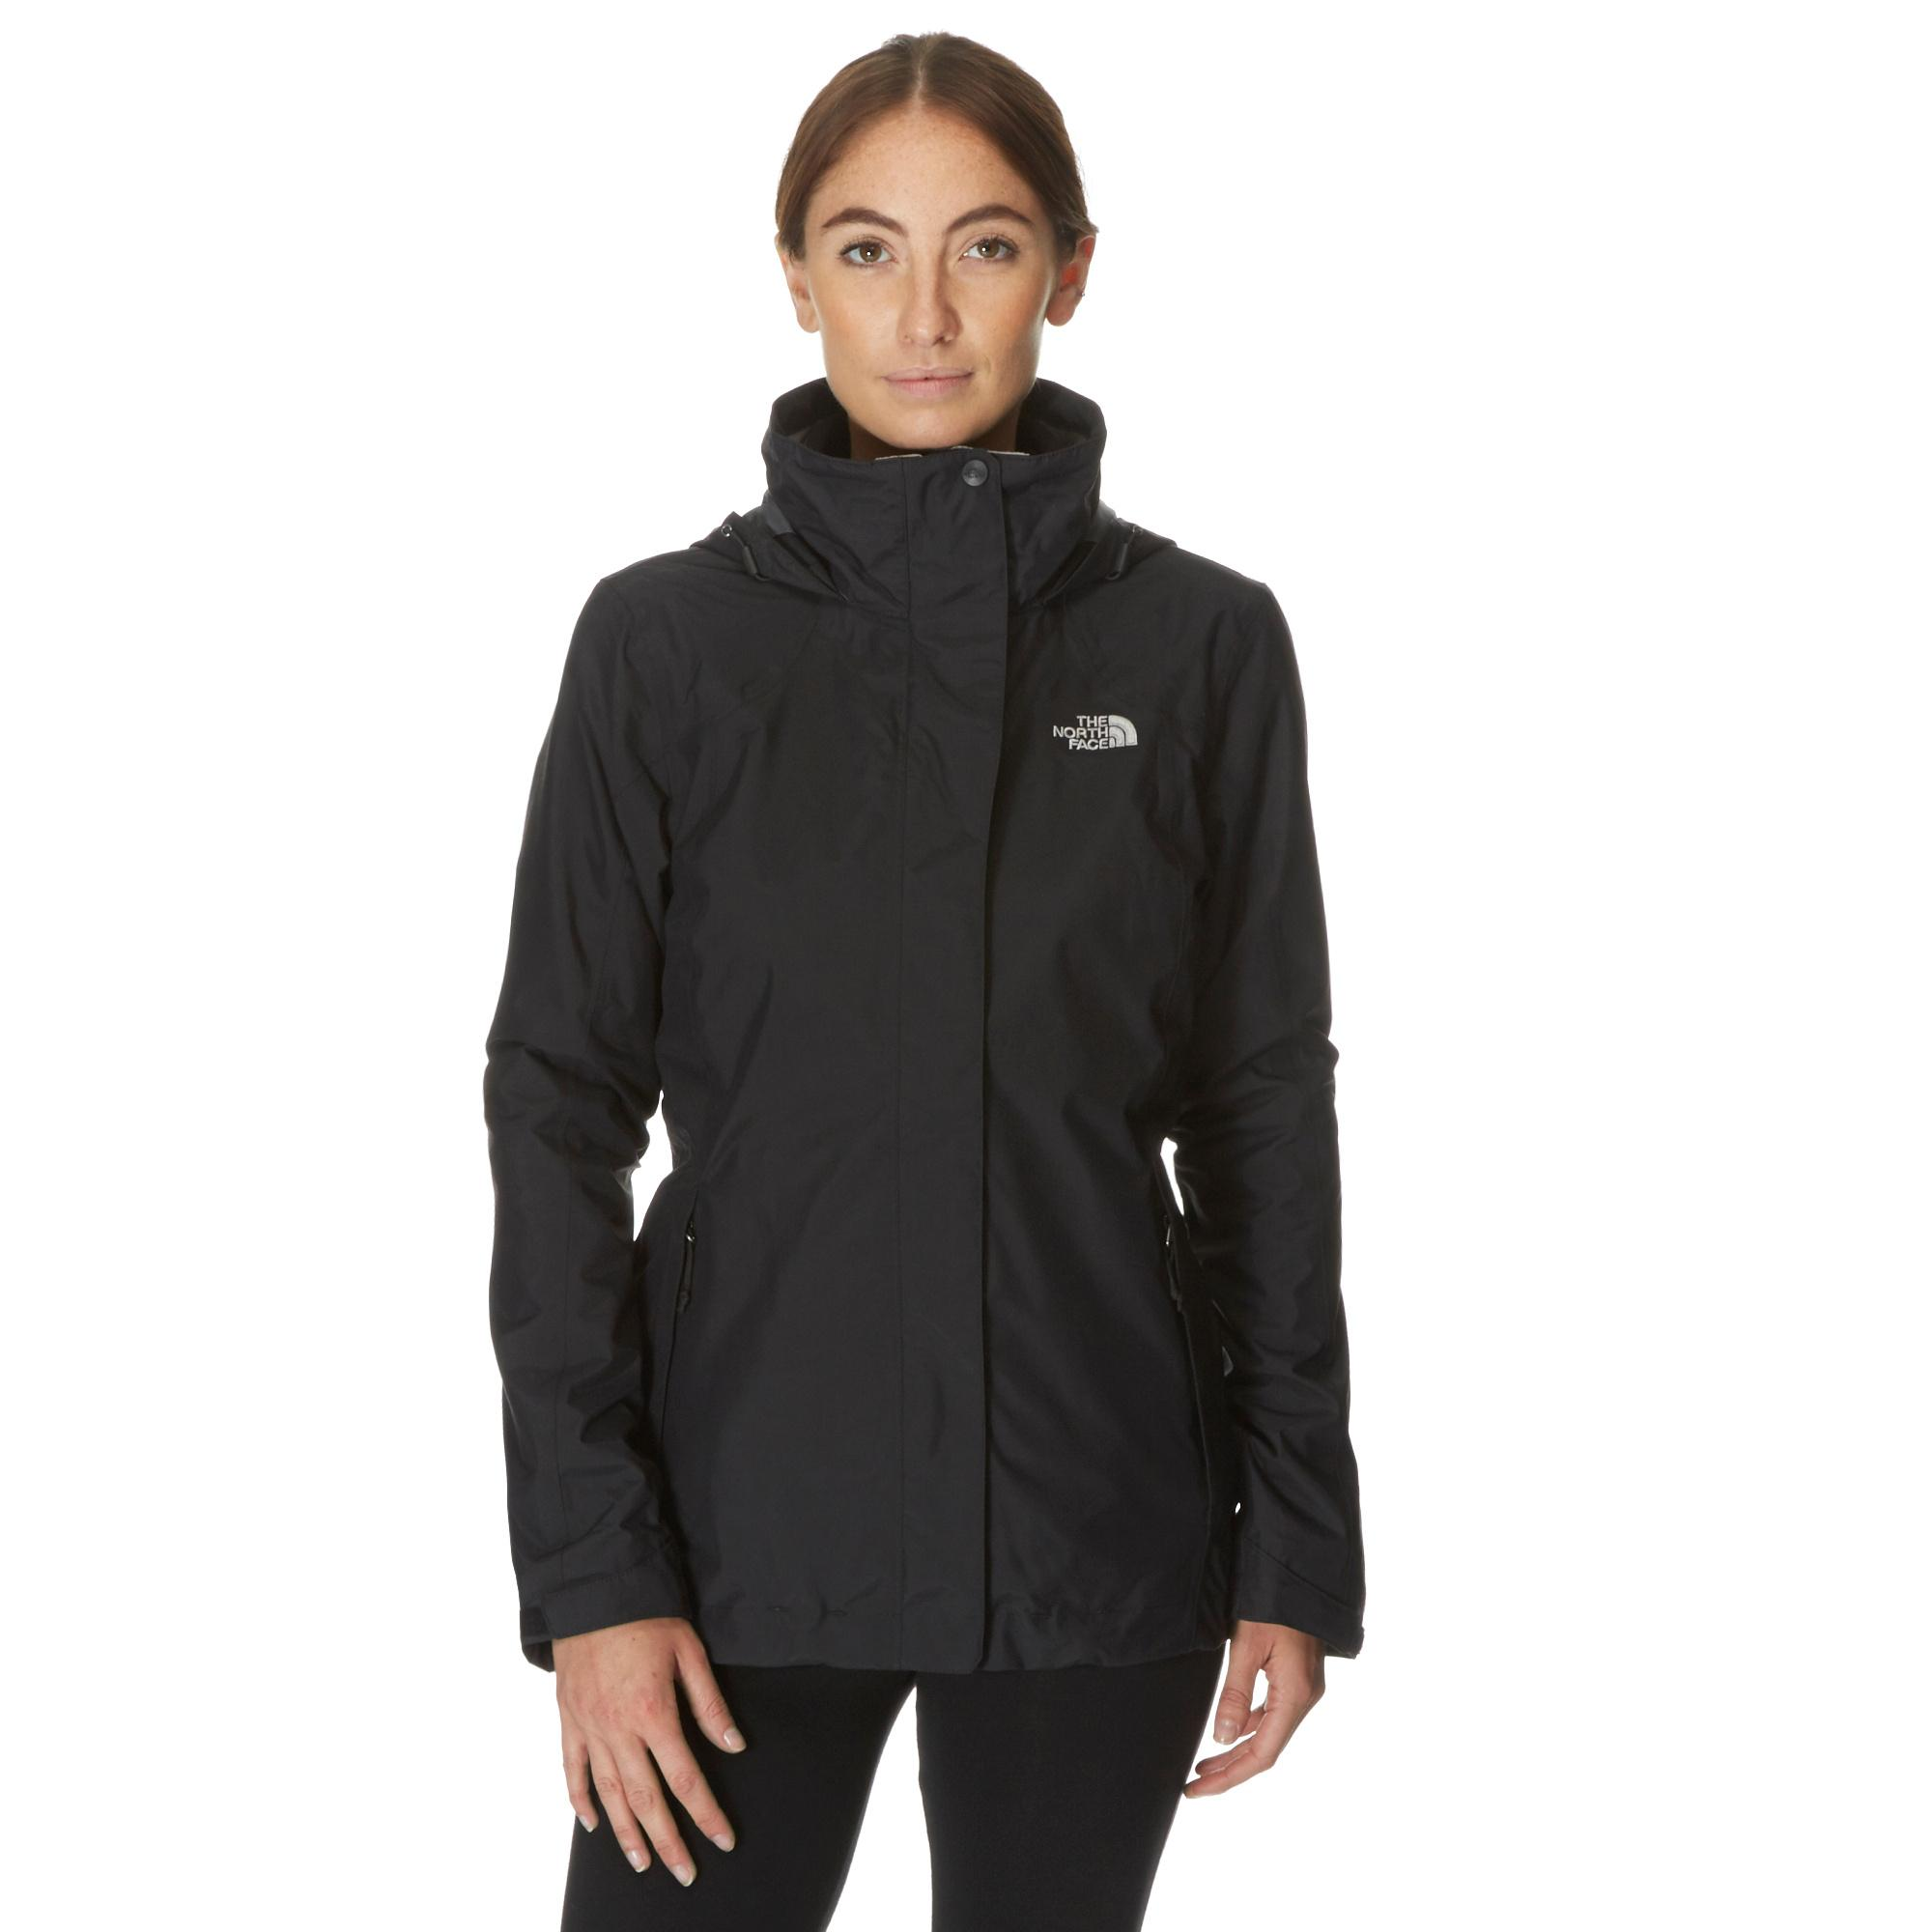 north face triclimate jacket shop for cheap women 39 s. Black Bedroom Furniture Sets. Home Design Ideas